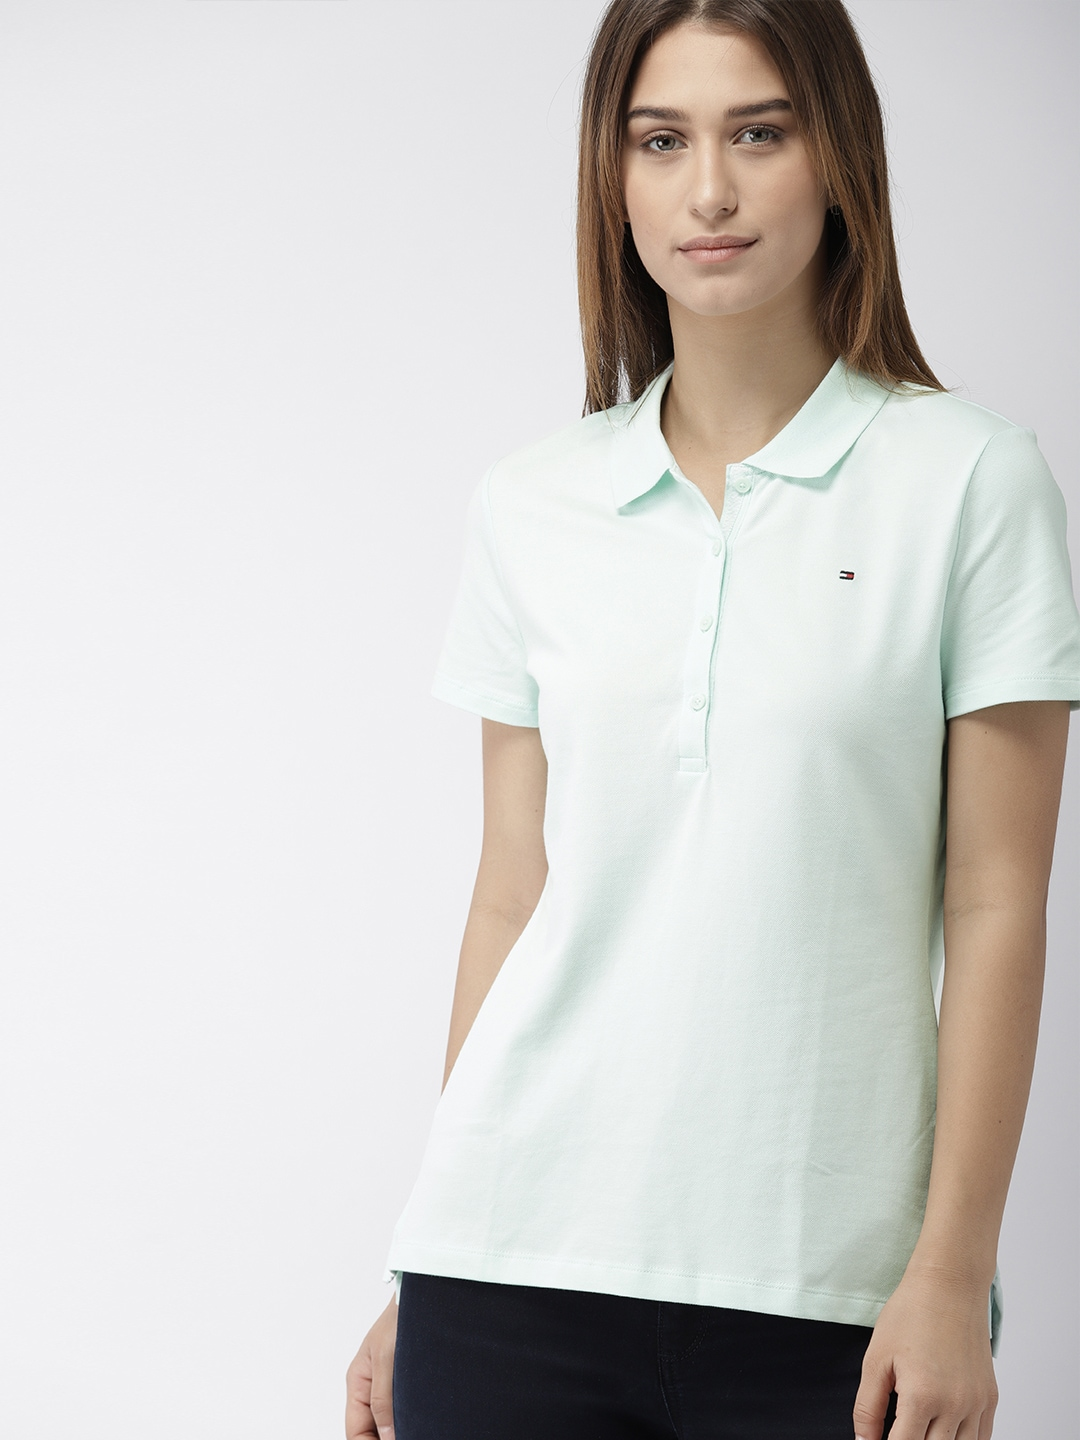 6db7f303 Women's Sale Dresses & Skirts| Tommy Hilfiger USA. Quick View for Short- Sleeve ...